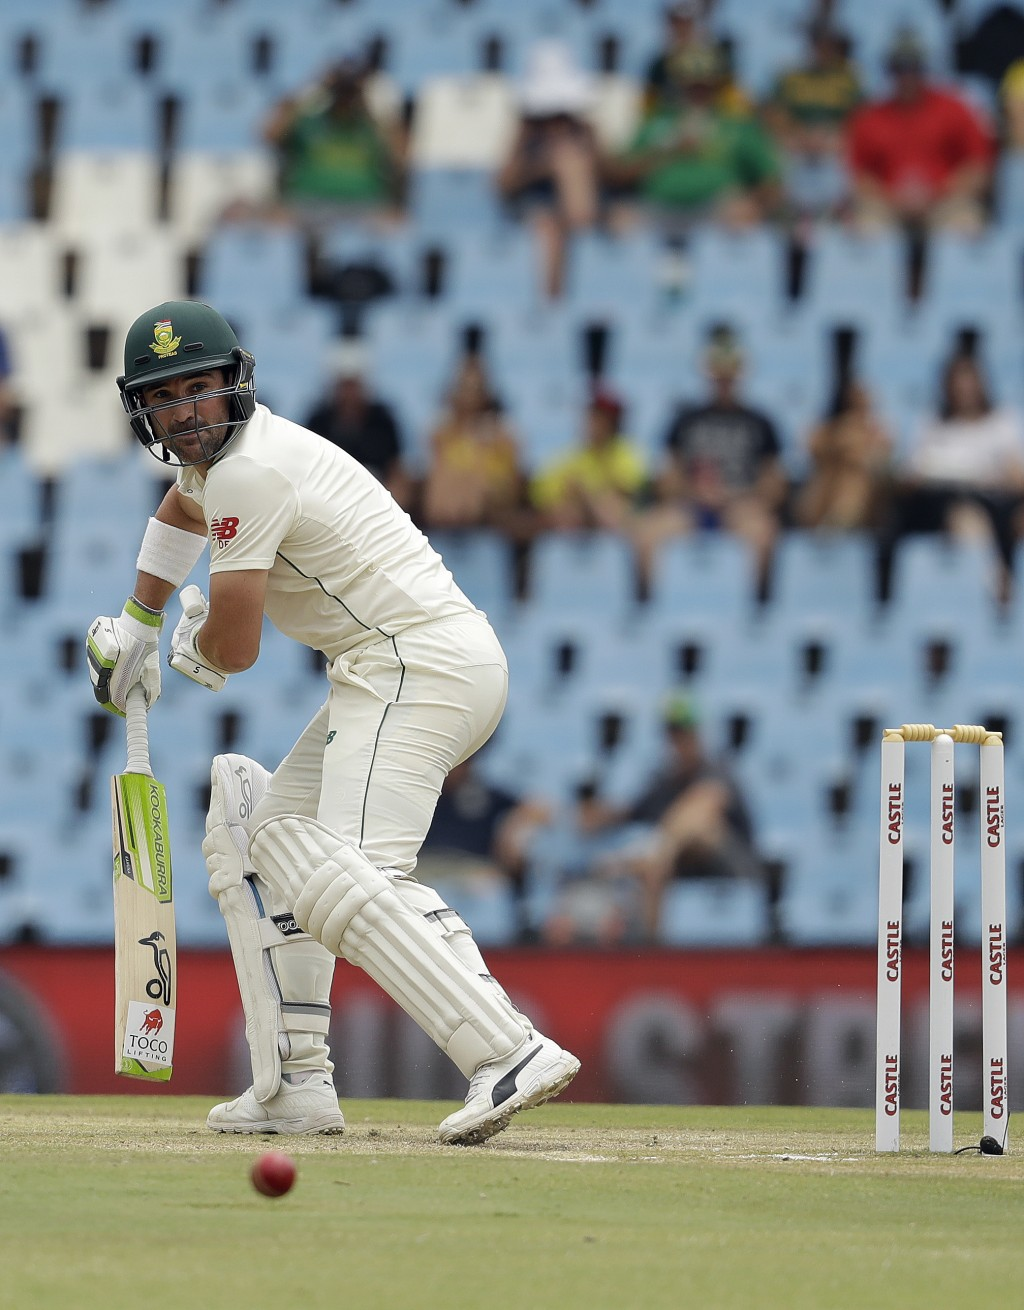 South Africa's batsman Dean Elgar watches his shot on day three of the first cricket test match between South Africa and Pakistan at Centurion Park in